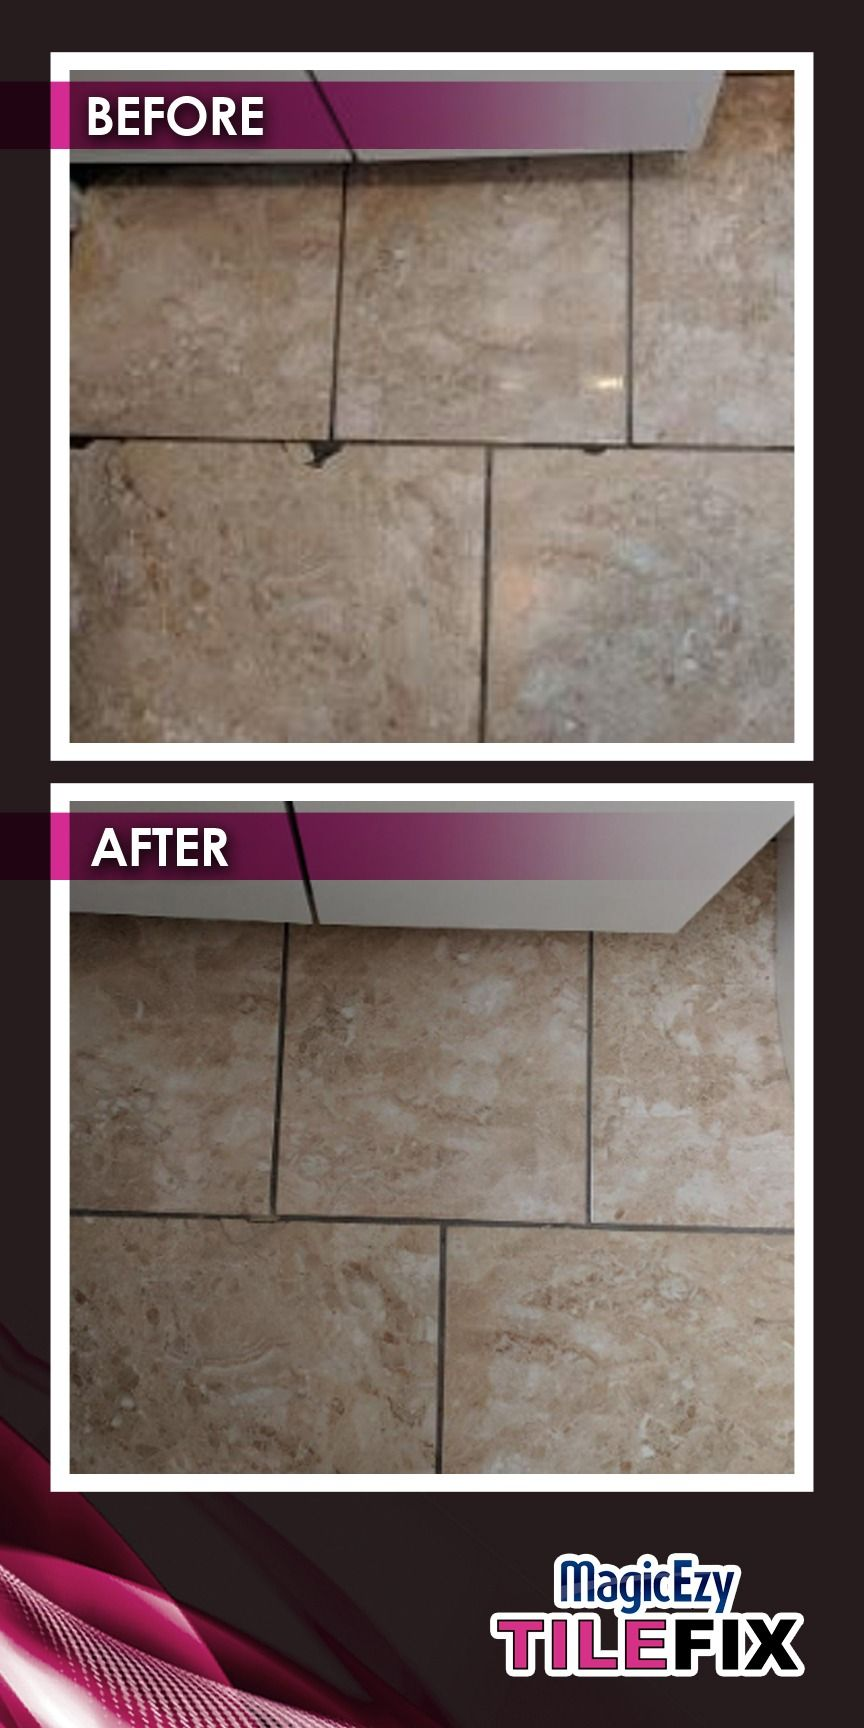 Before And After Result Of Tile Repairezy In 2020 Cracked Tile Repair Tile Repair Ceramic Floor Tile